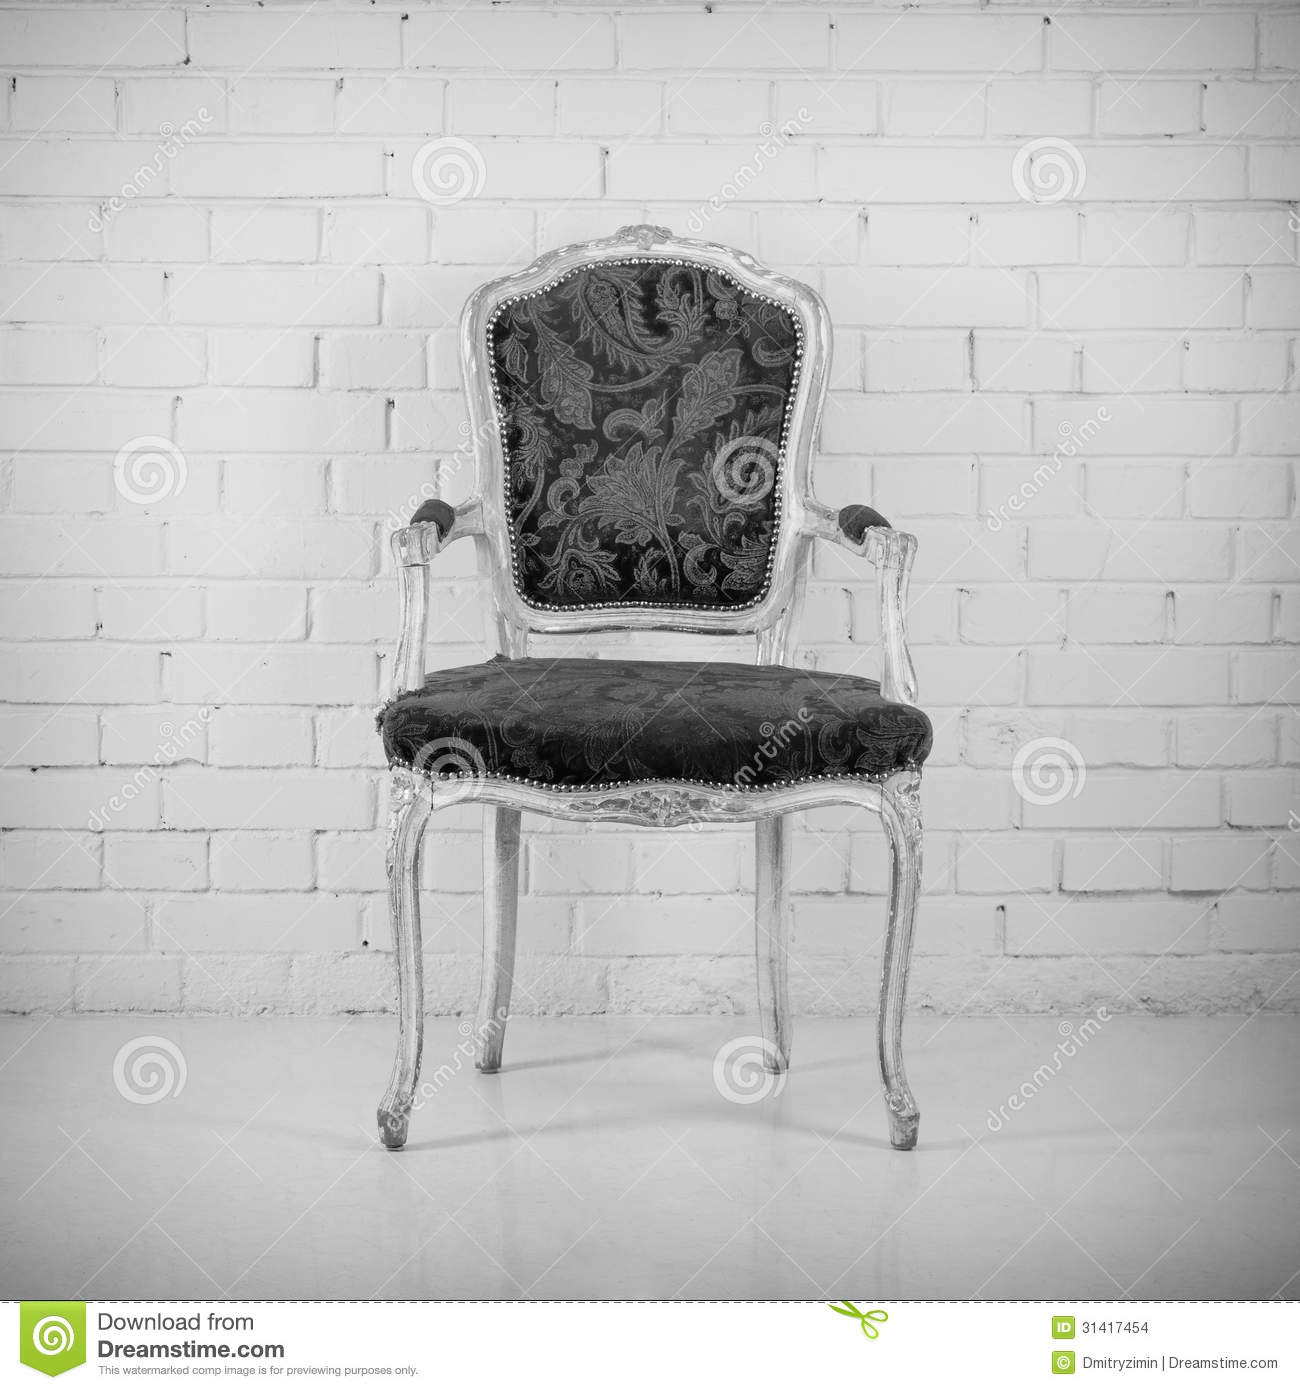 vintage chair stock images image 31417454. Black Bedroom Furniture Sets. Home Design Ideas